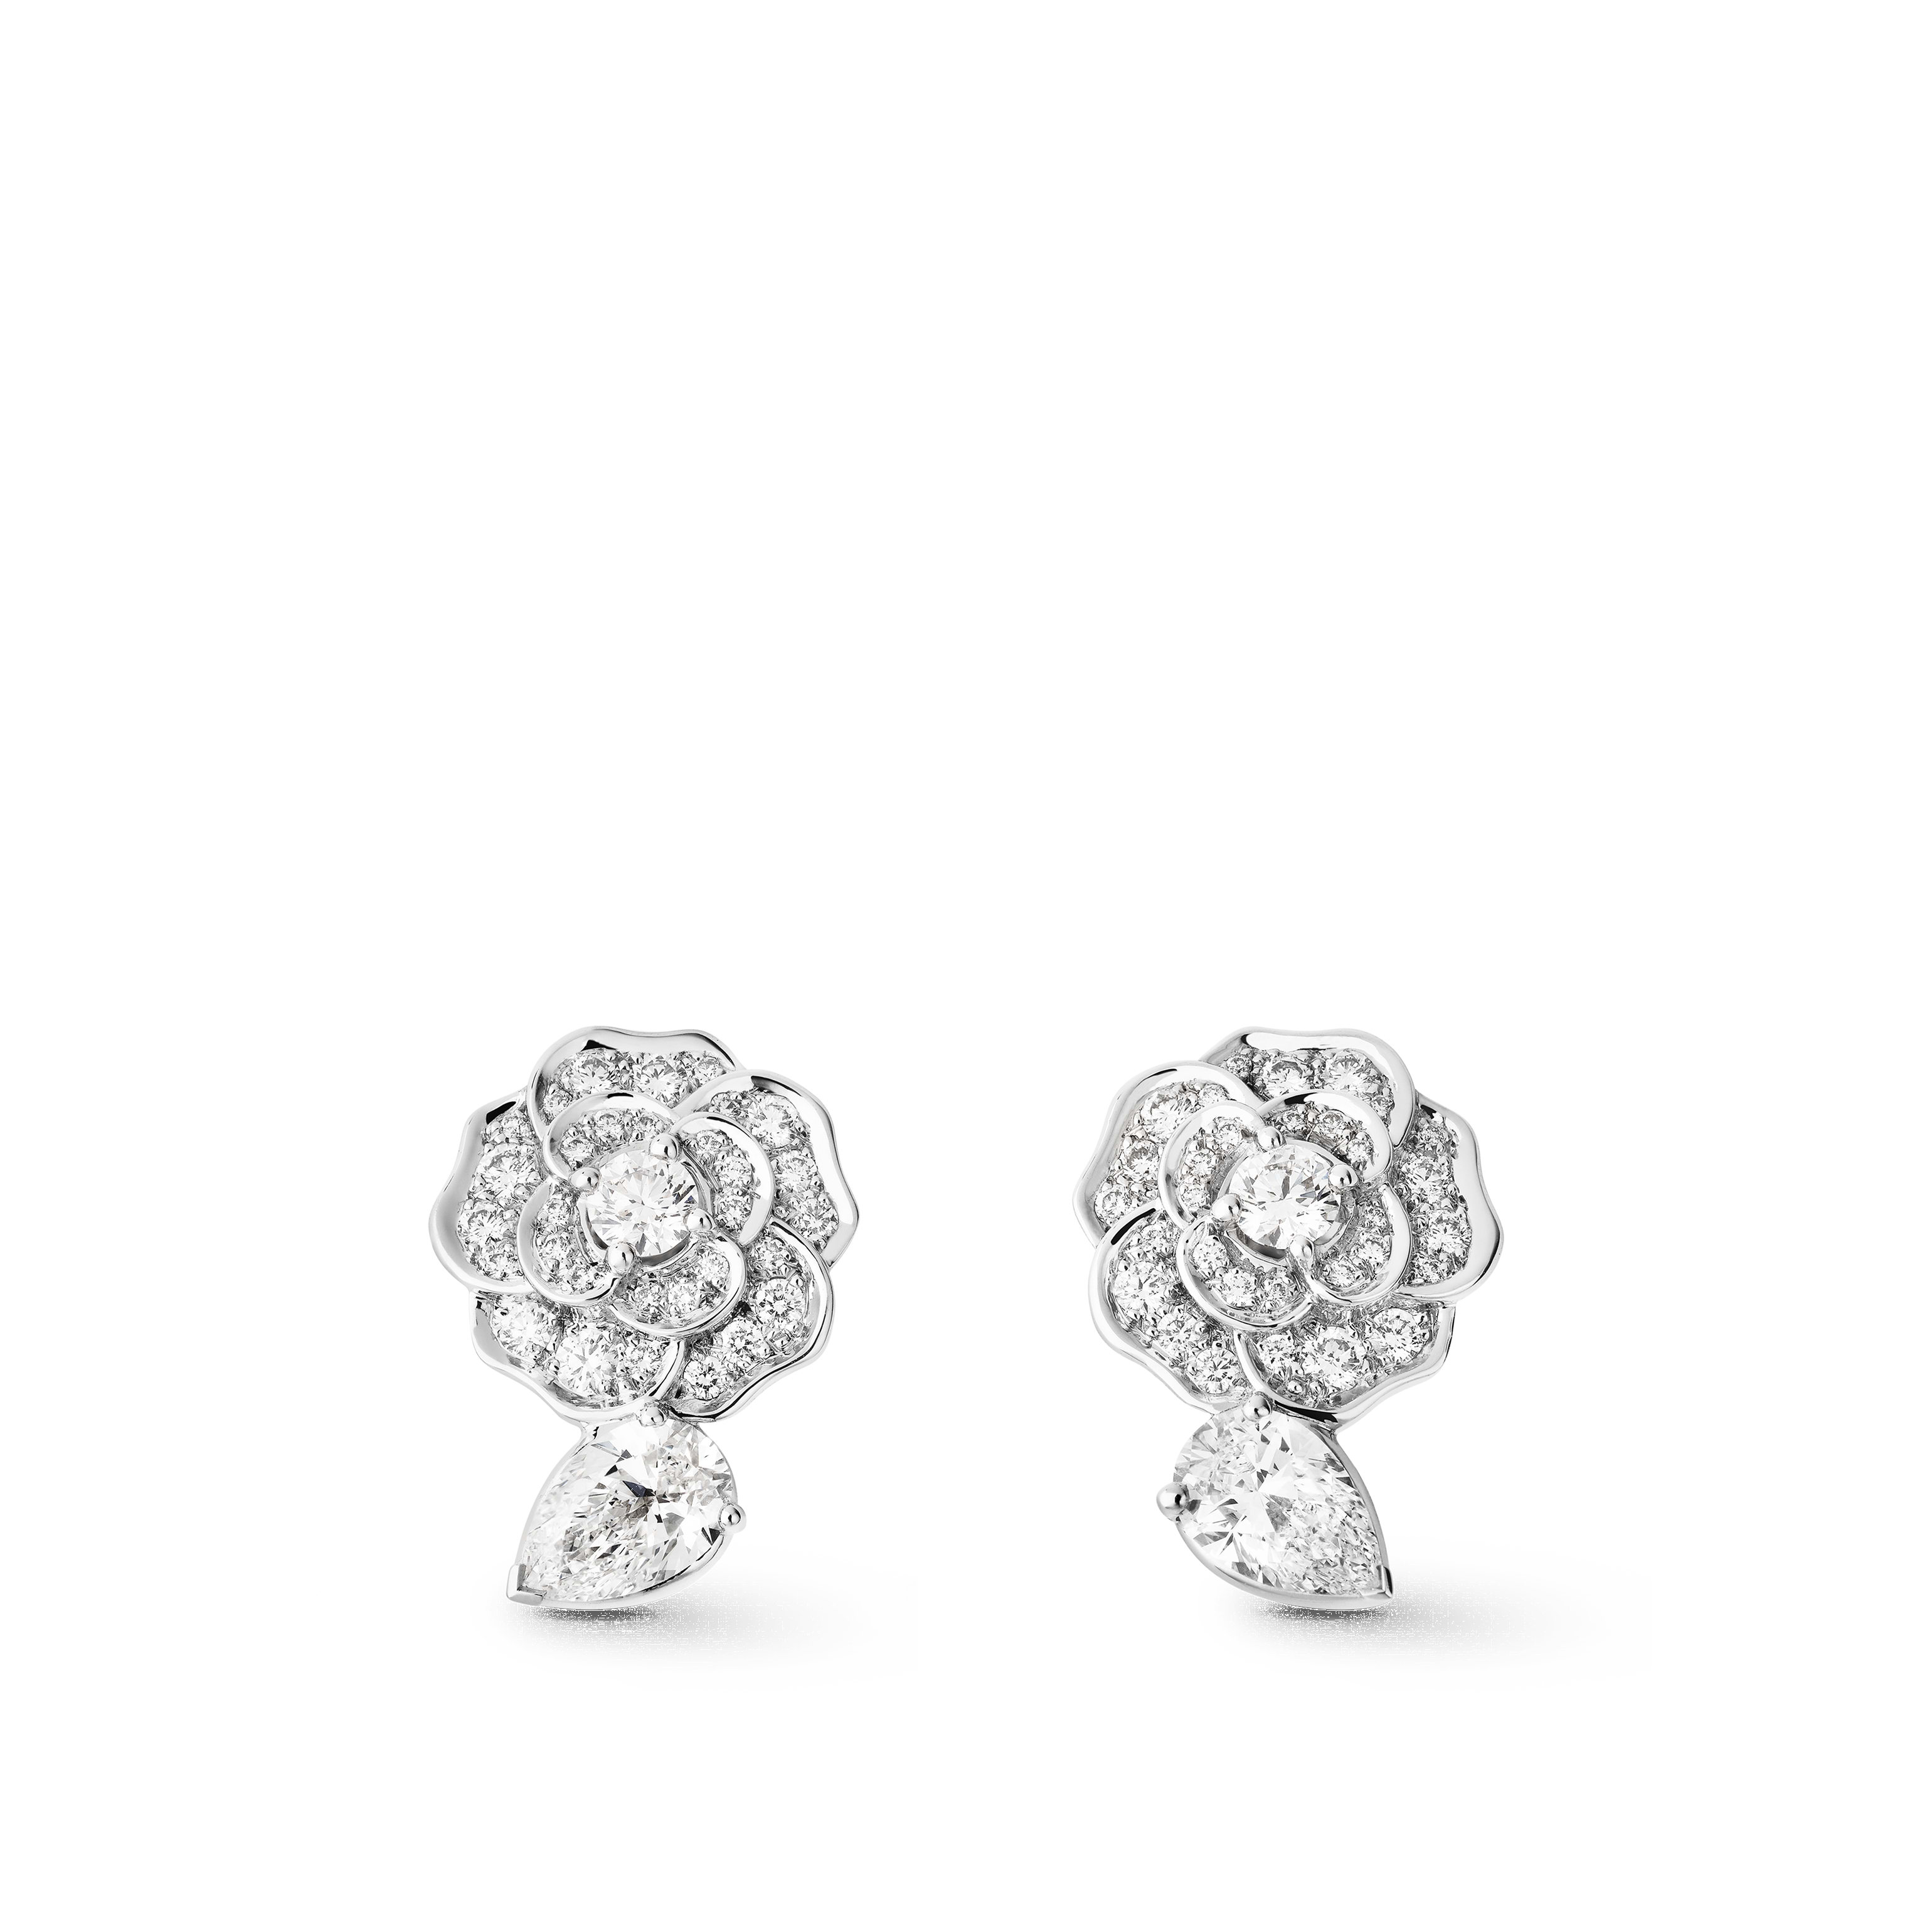 Camélia Précieux earrings - 18K white gold, diamonds - CHANEL - Default view - see standard sized version